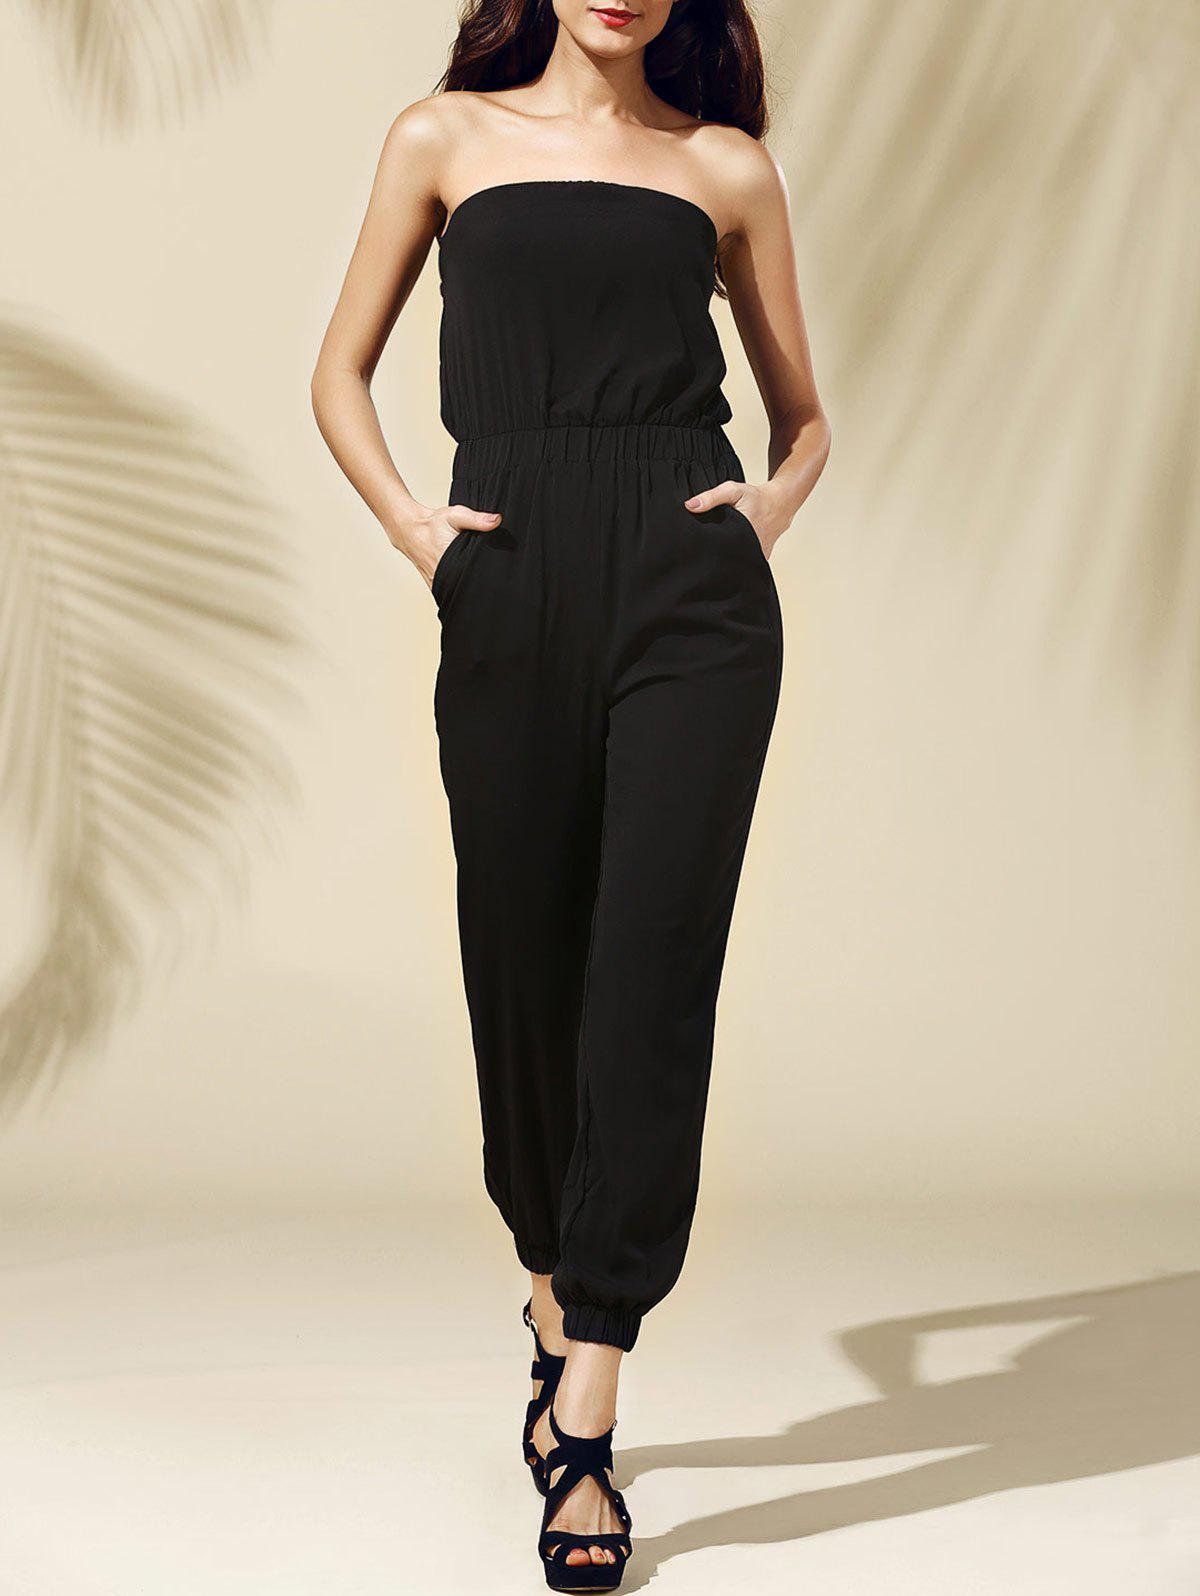 Attractive Strapless Pocket Design Women's Jumpsuit - BLACK S